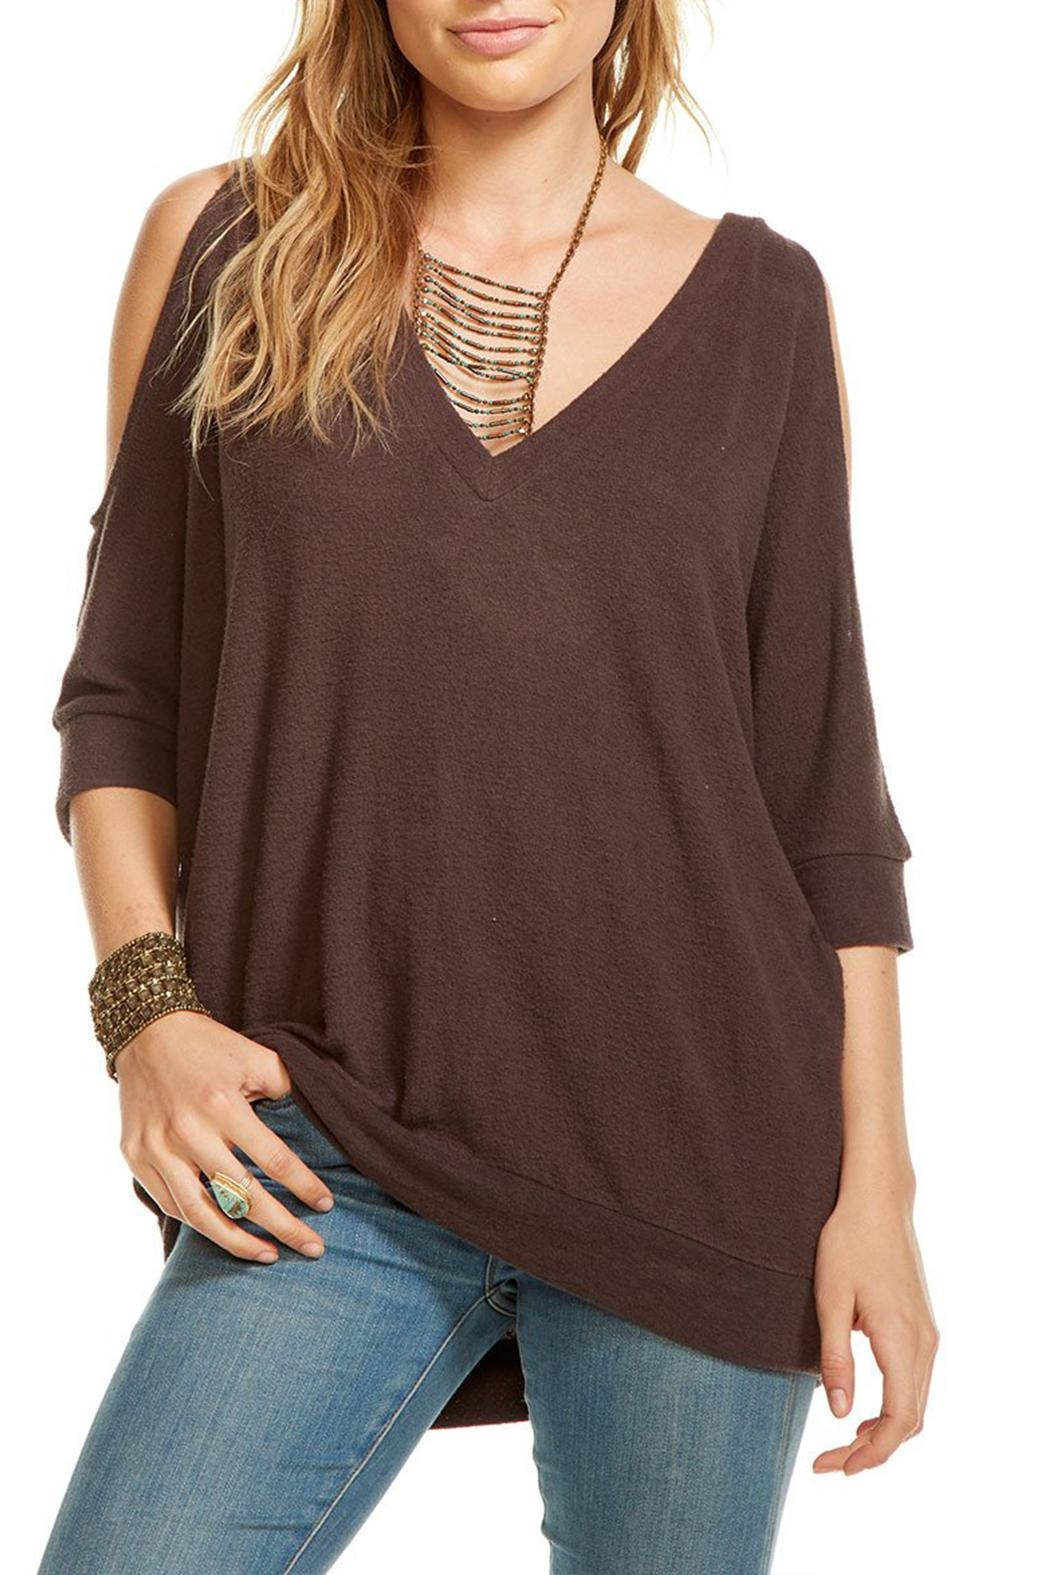 Chaser Cold Shoulder Sweater - Main Image